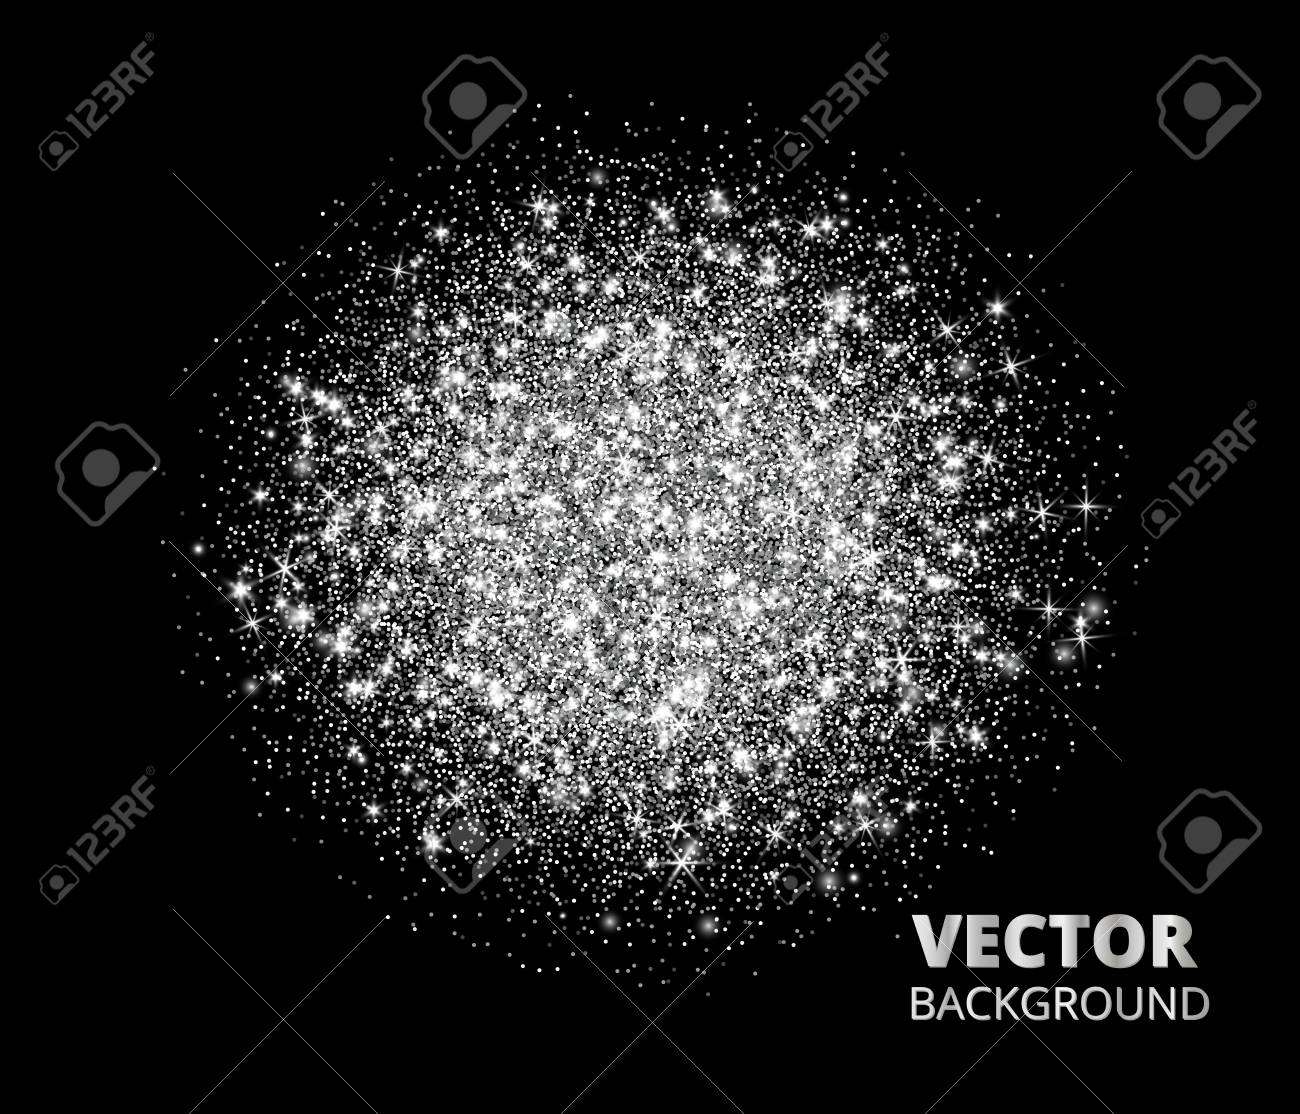 Sparkling Background Silver Glitter Explosion Great For Valentine Christmas And Birthday Greeting Cards